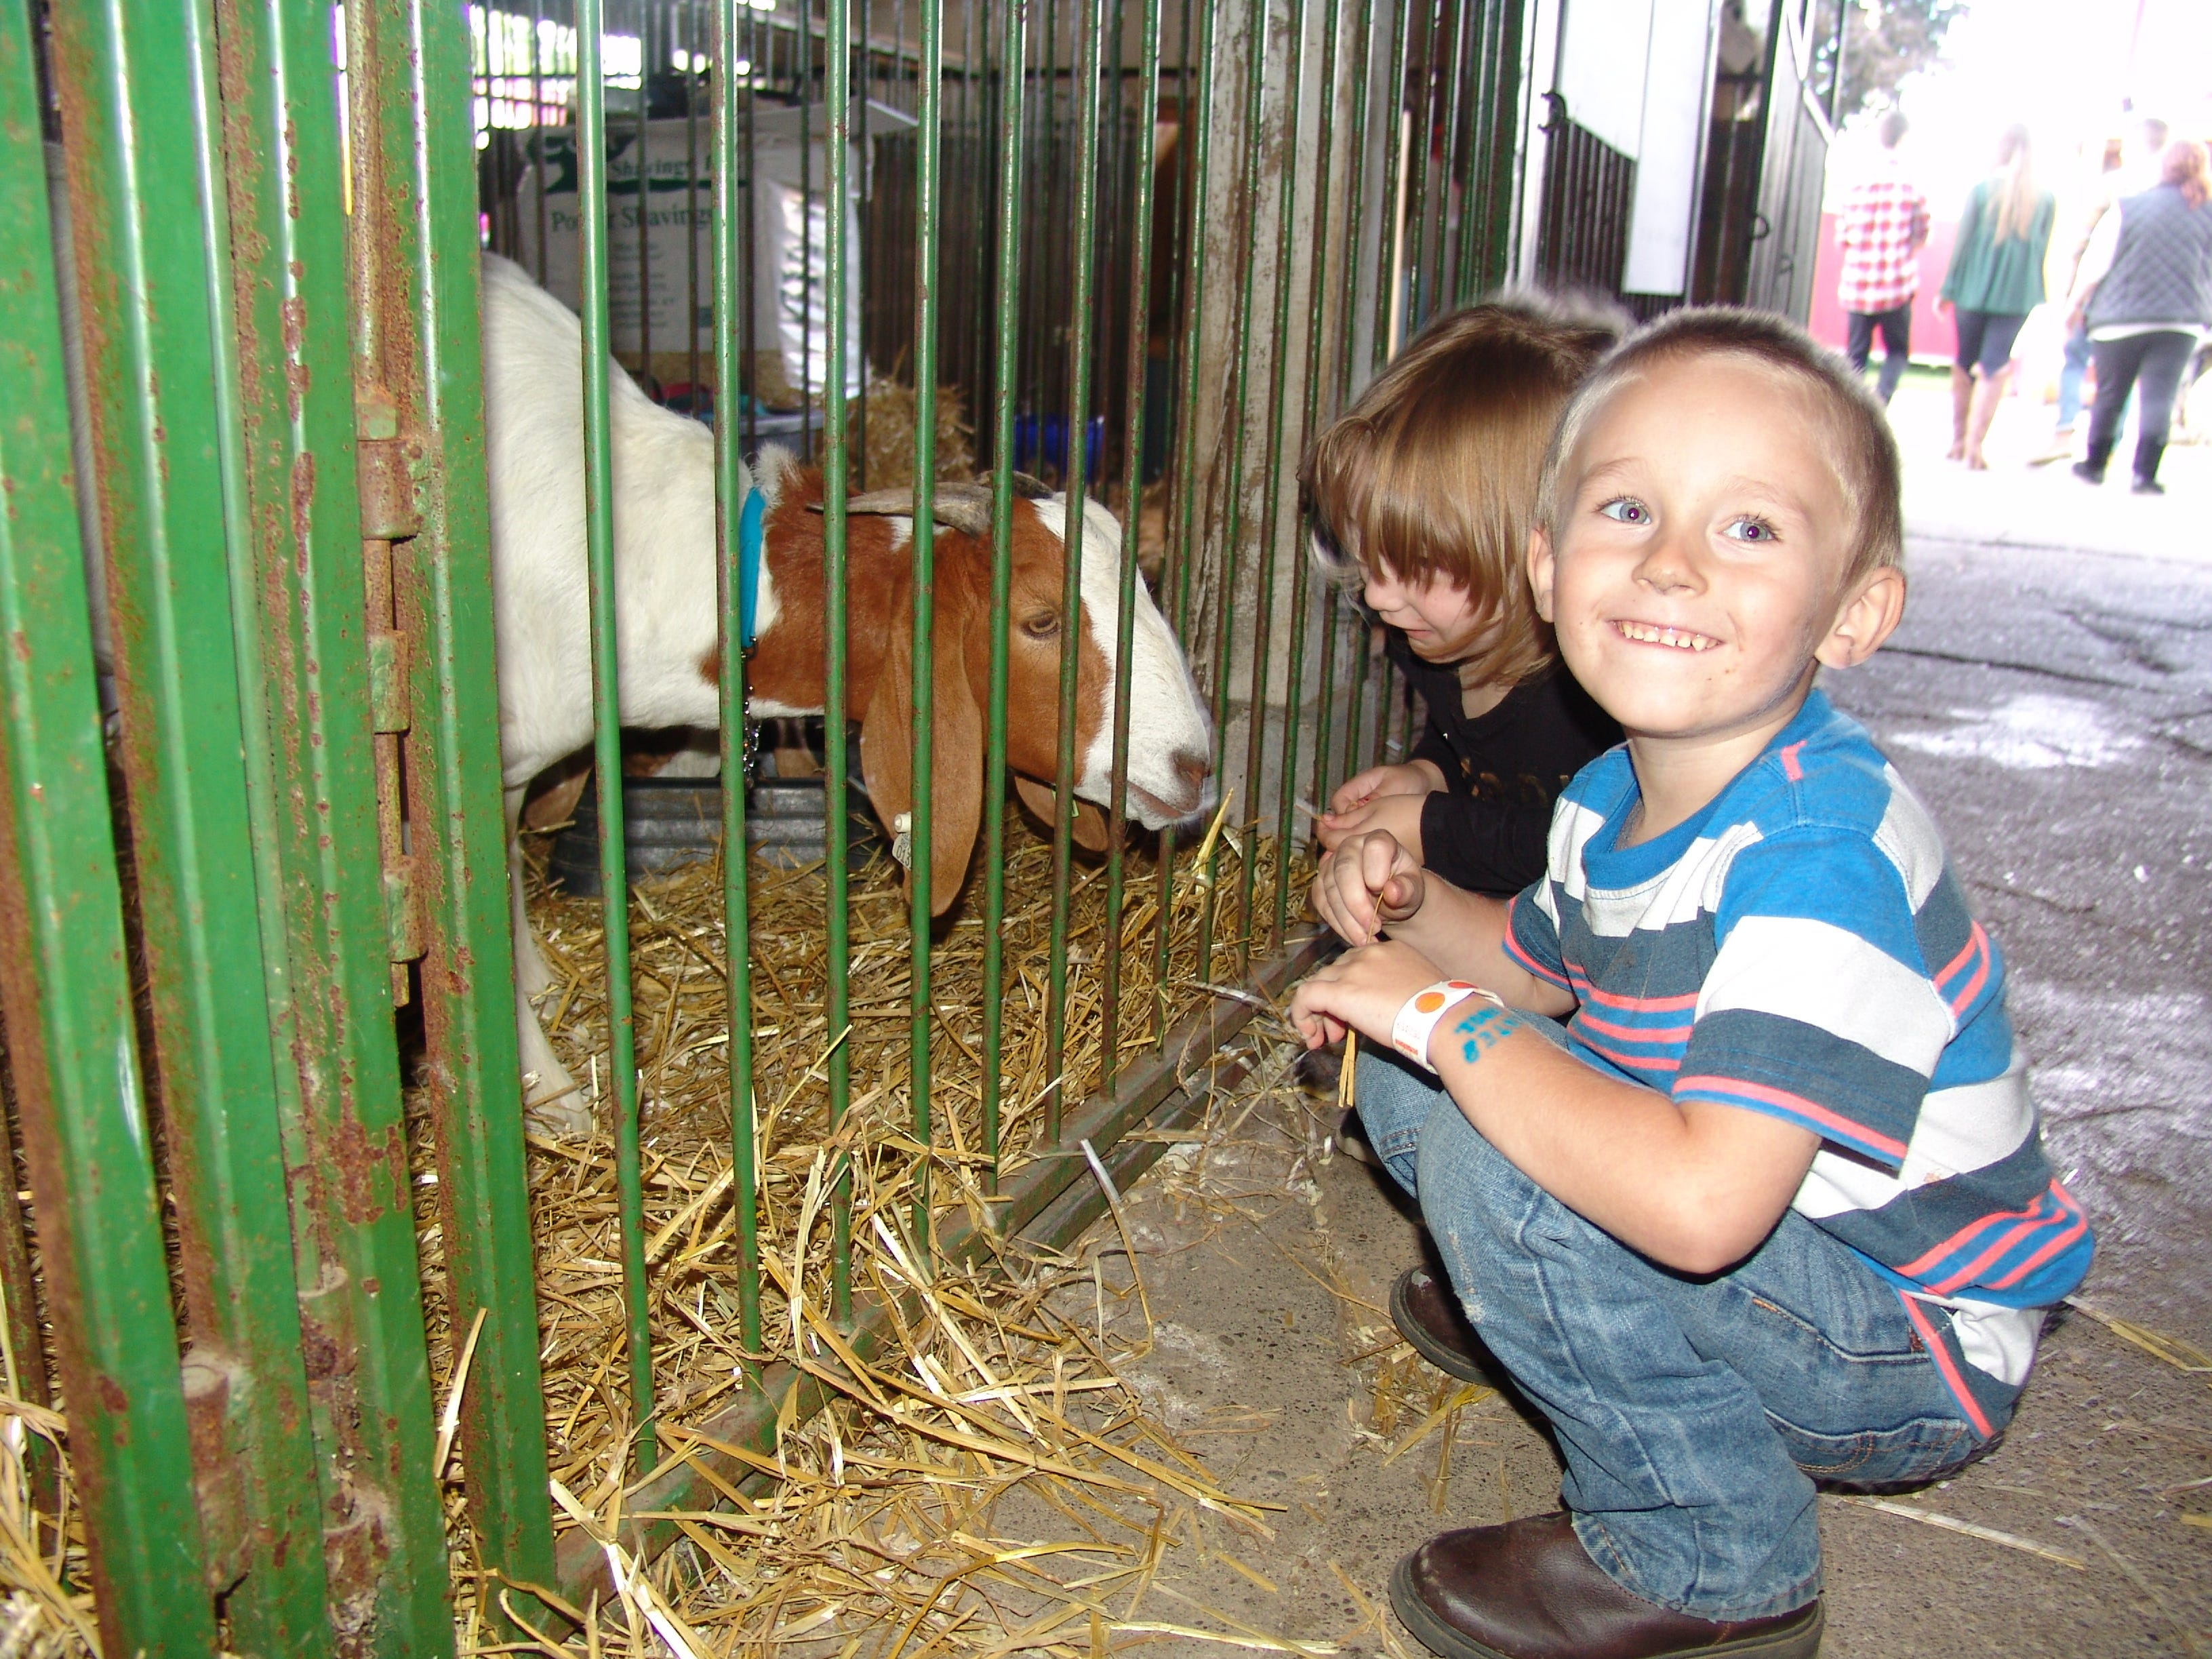 Cousins Trevor Mumaw and Adeline Waddell of Zanesville feed straw to goats in the goat barn Saturday at the Coshocton County Fair.